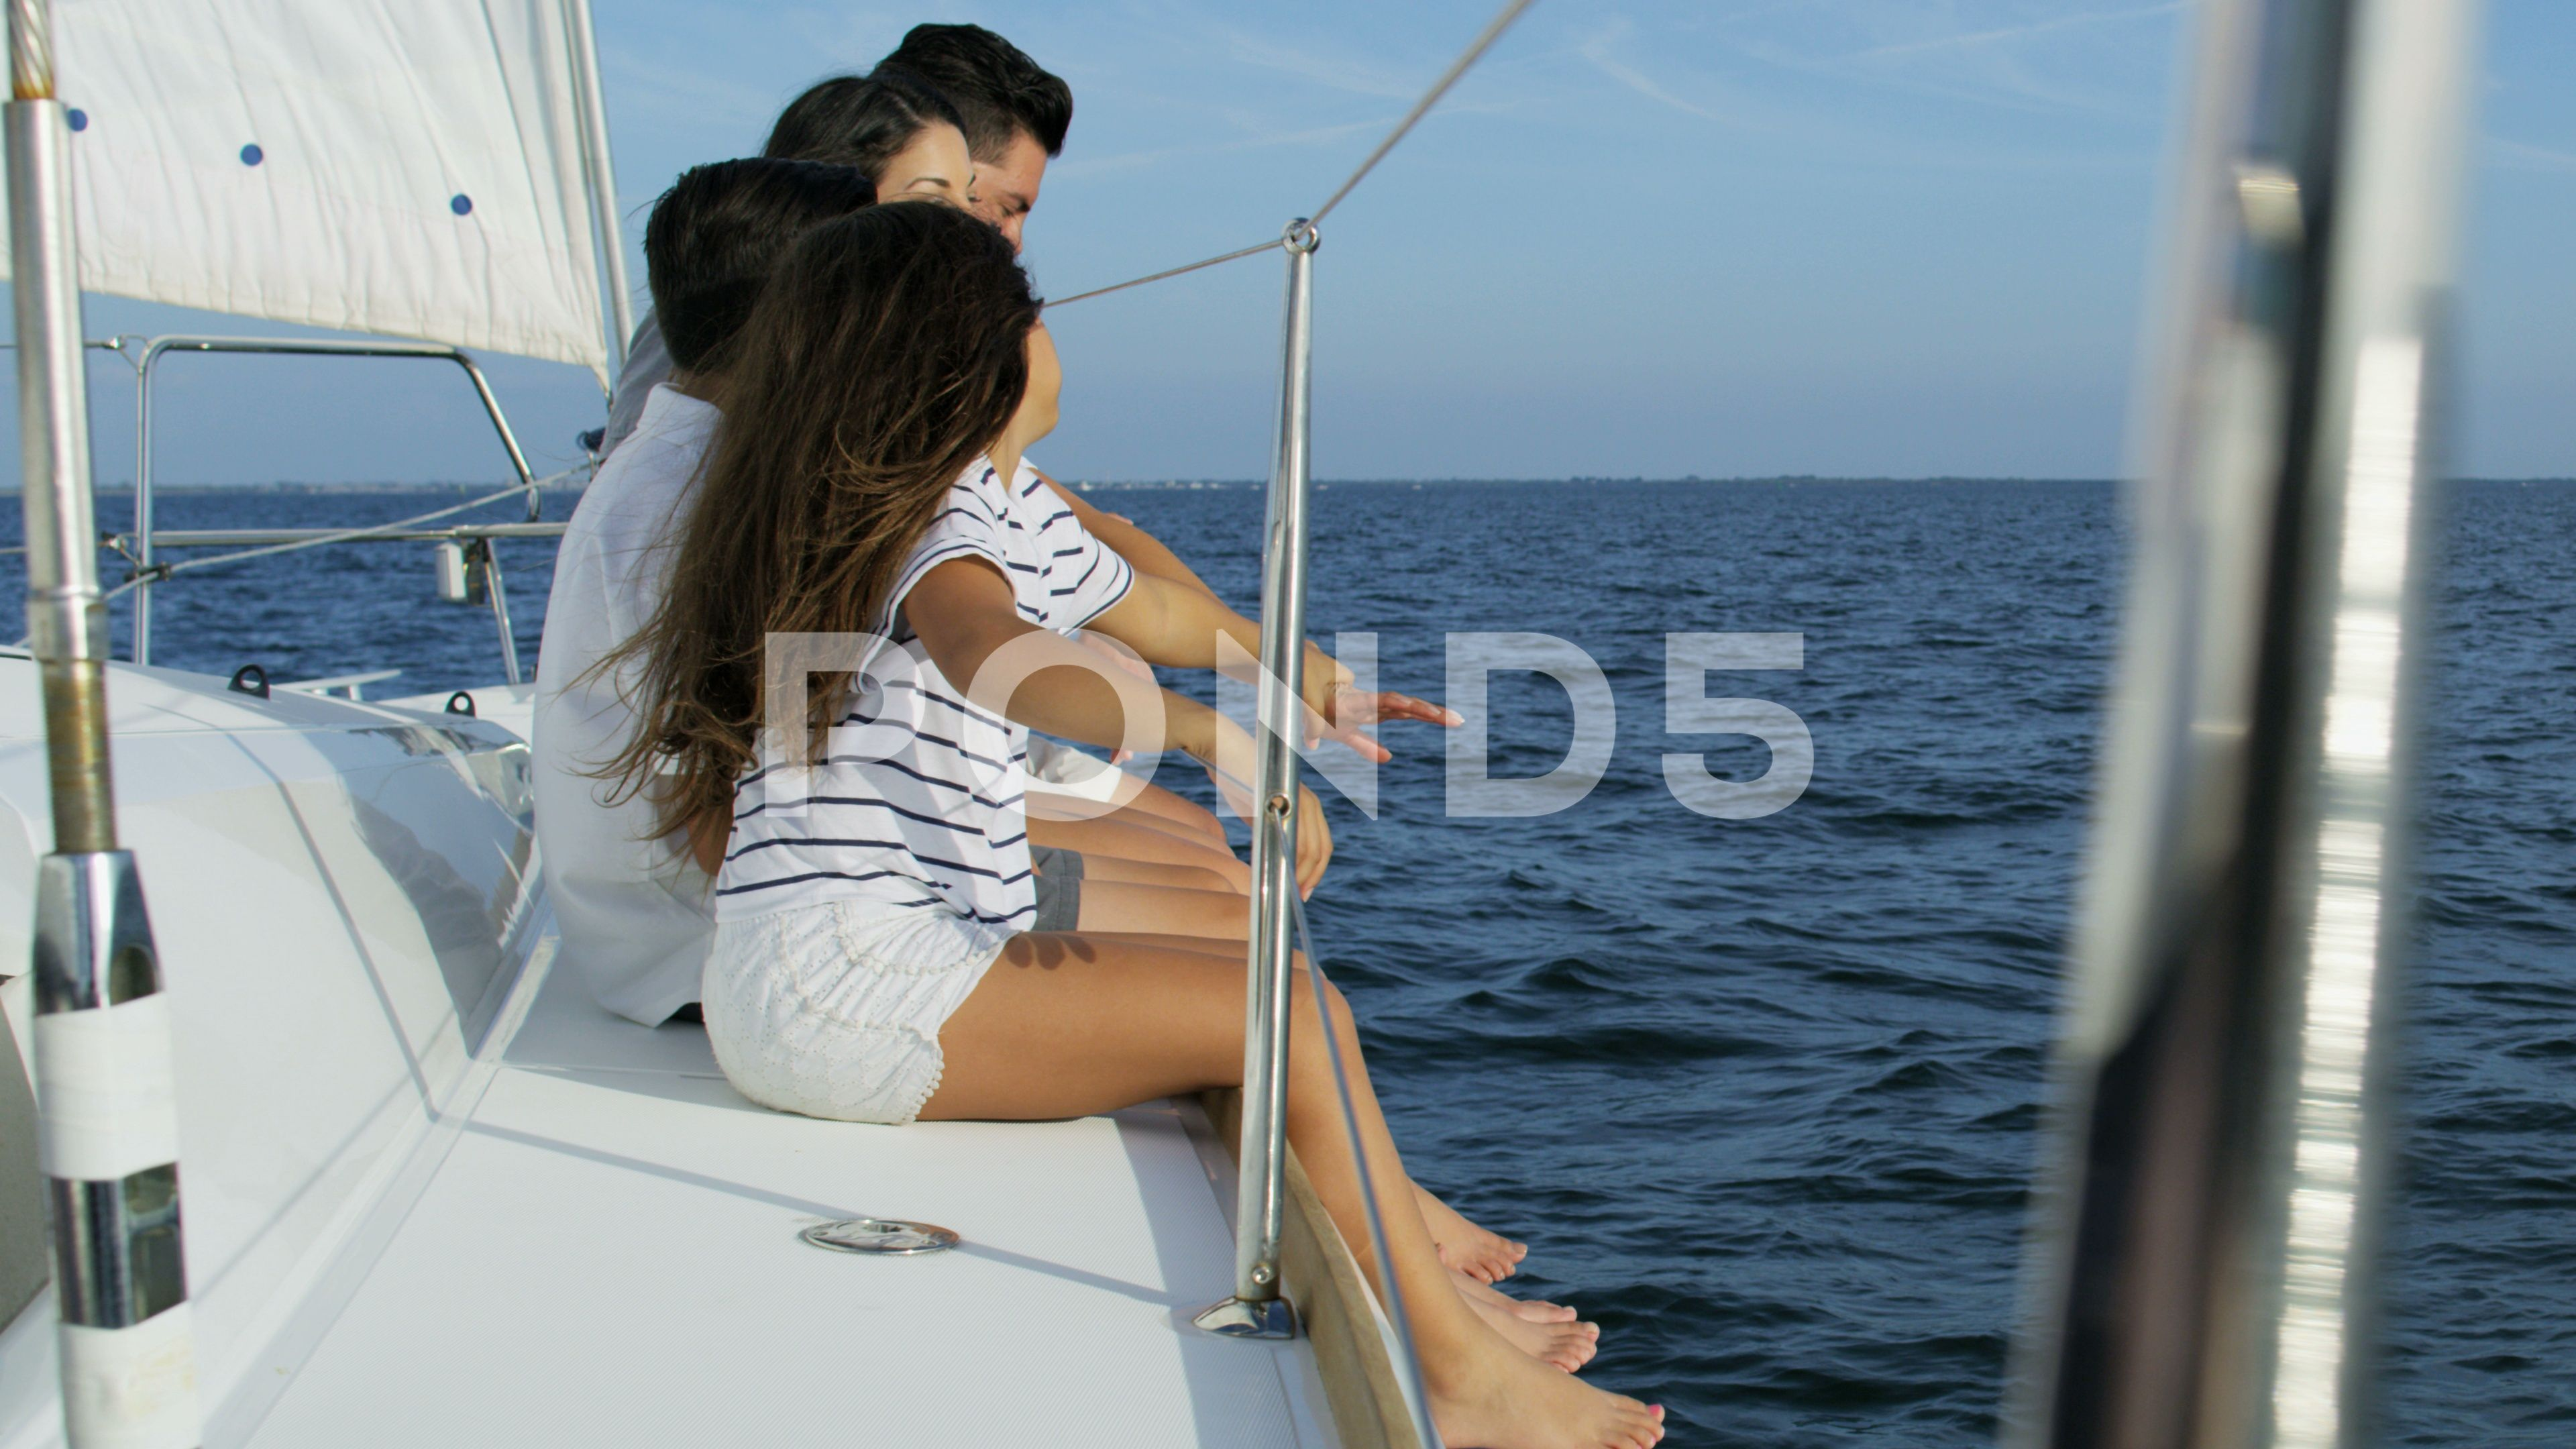 Hispanic Family In Casual Clothing At Leisure Sailing The Ocean On